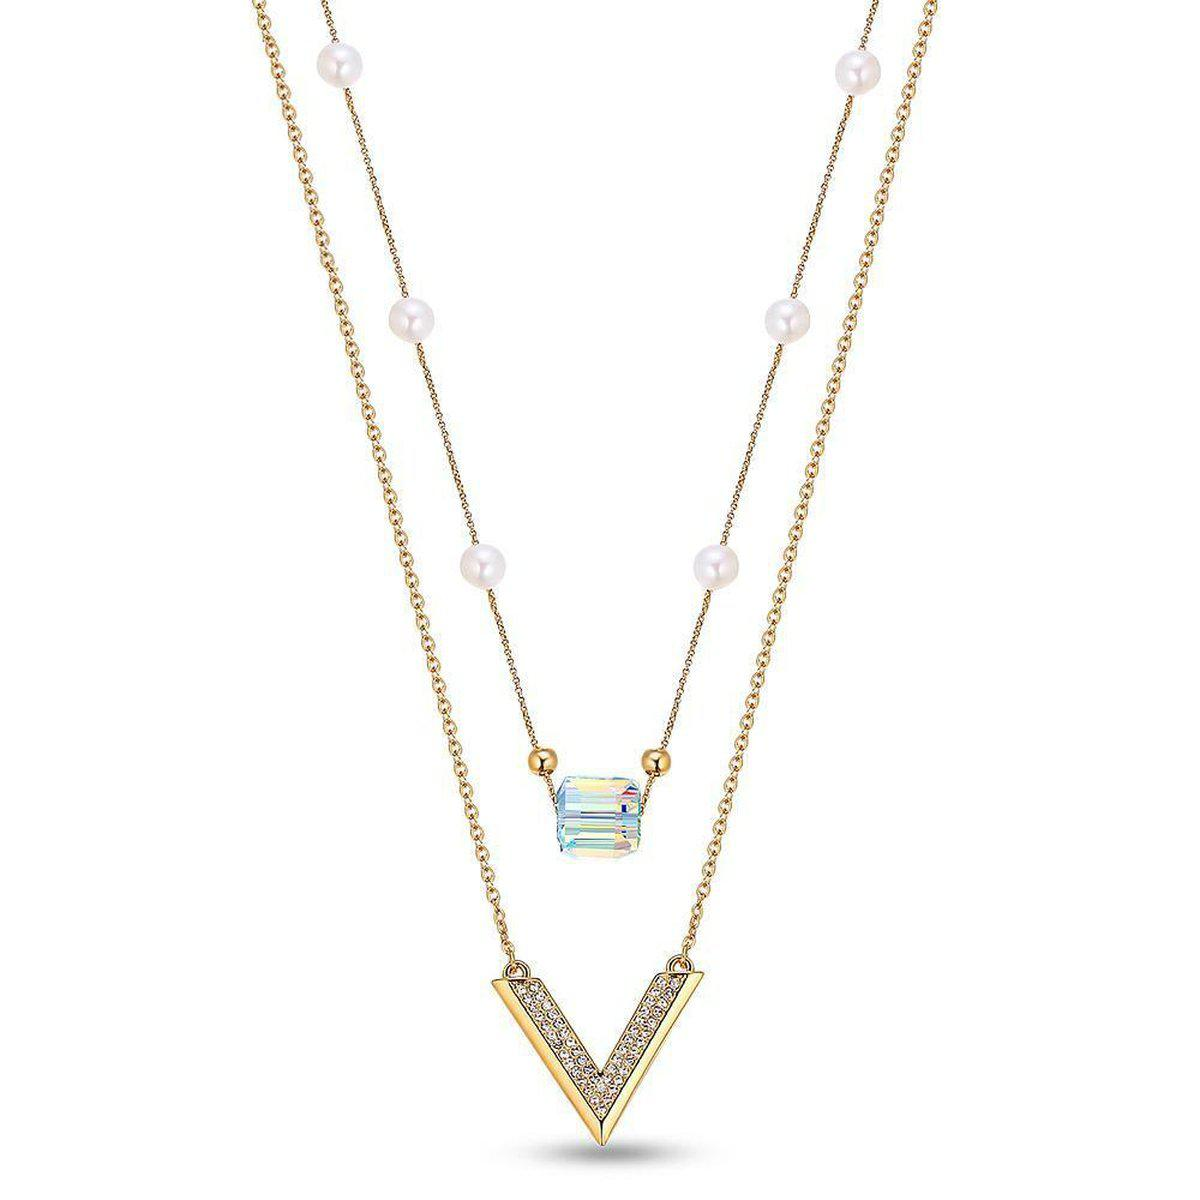 Glorious Elegance Long Necklace-Blinglane